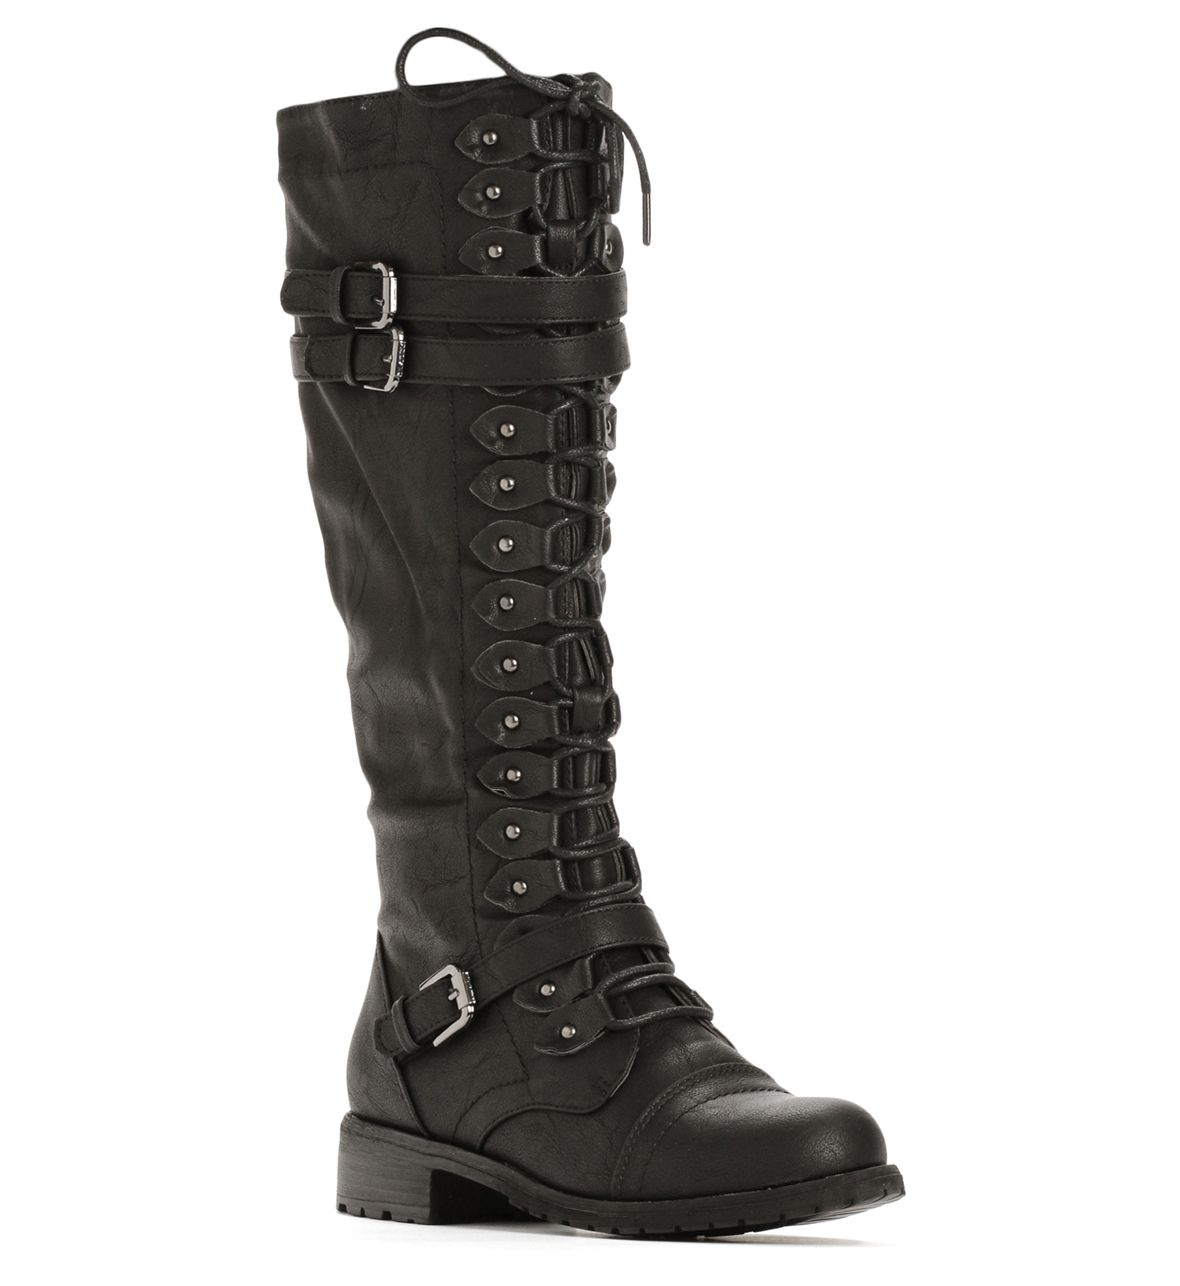 SALE-Black Lace-Up Tall Combat Boots | Cool clothes | Pinterest ...